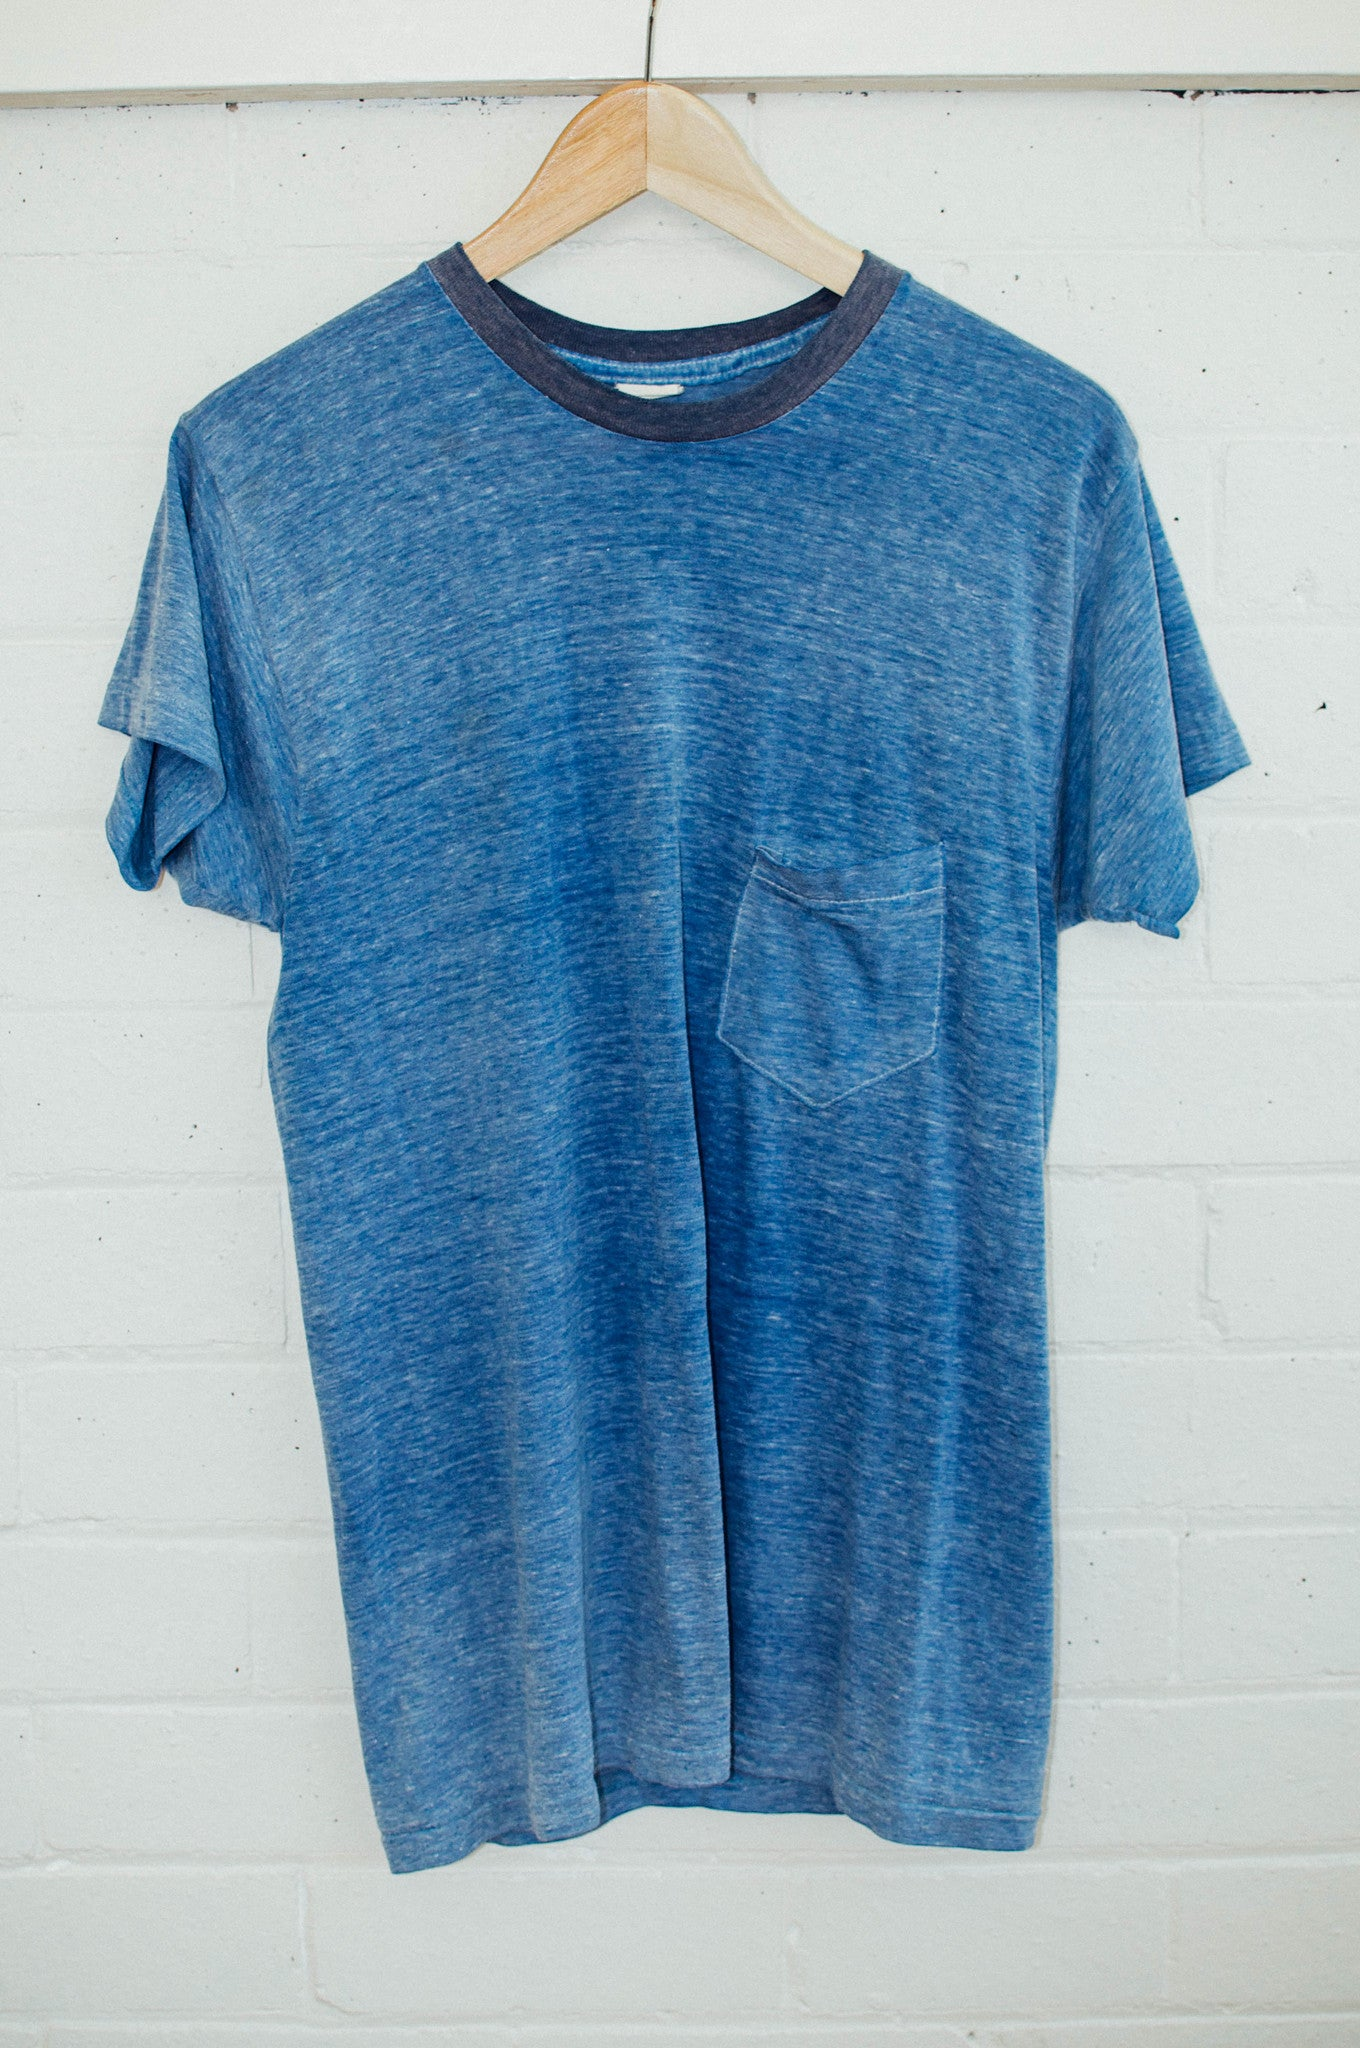 Vintage 'Paper Thin' Pocket Tee - THE NINETY NINE - 1